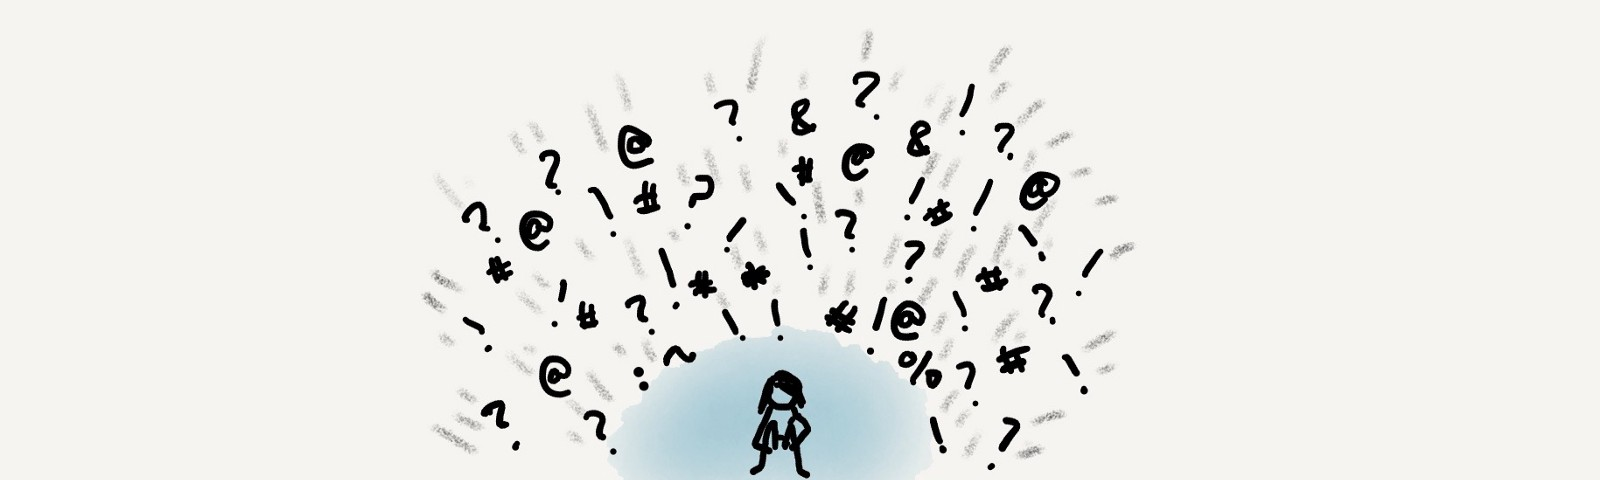 Several punctuation marks flying towards a stick figure protected by a blue orb.